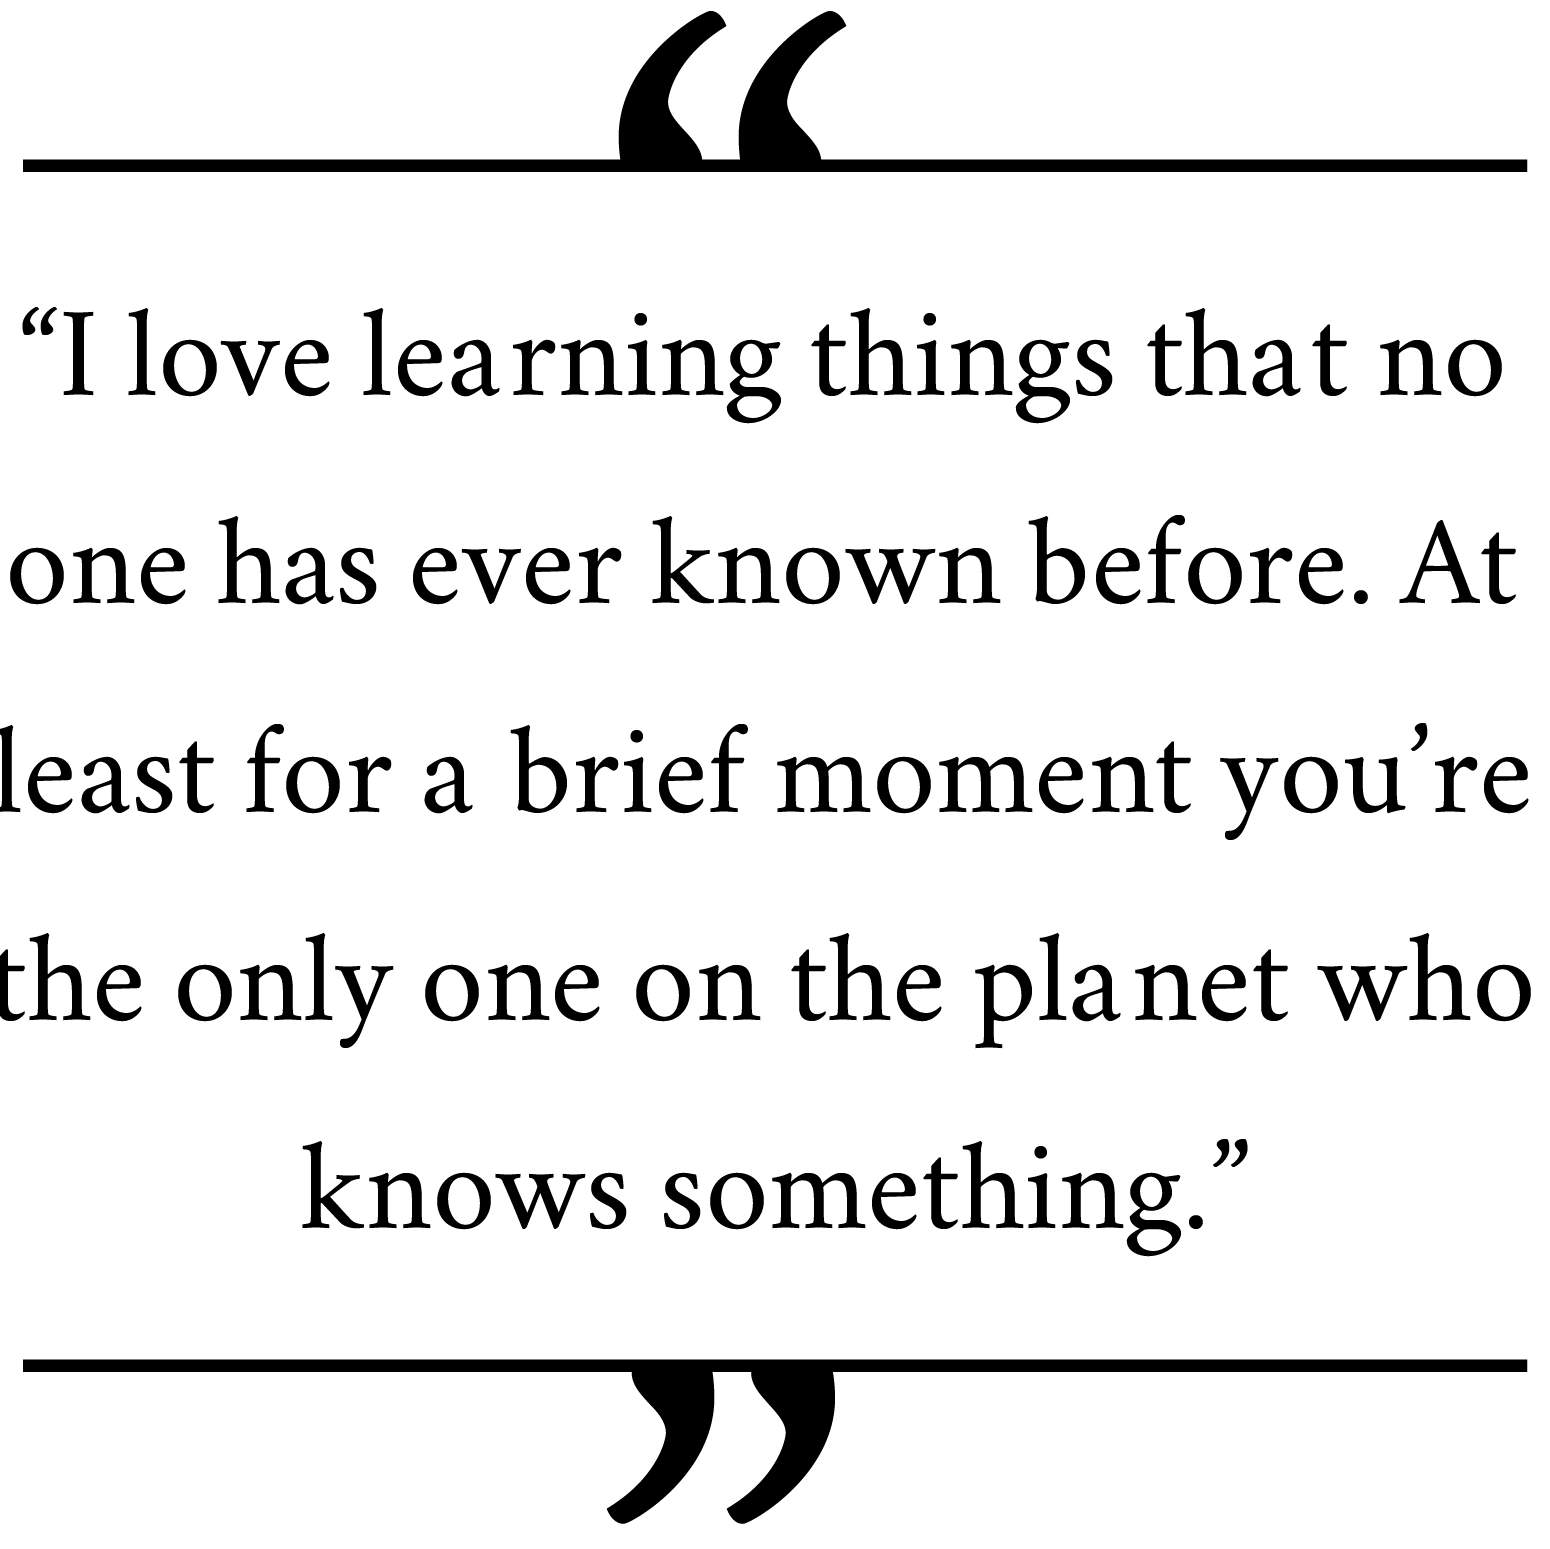 'I-love-learning-things-that-no-one-has-ever-known-before.-At-least-for-a-brief-moment-you're-the-only-one-on-the-planet-who-knows-something.'